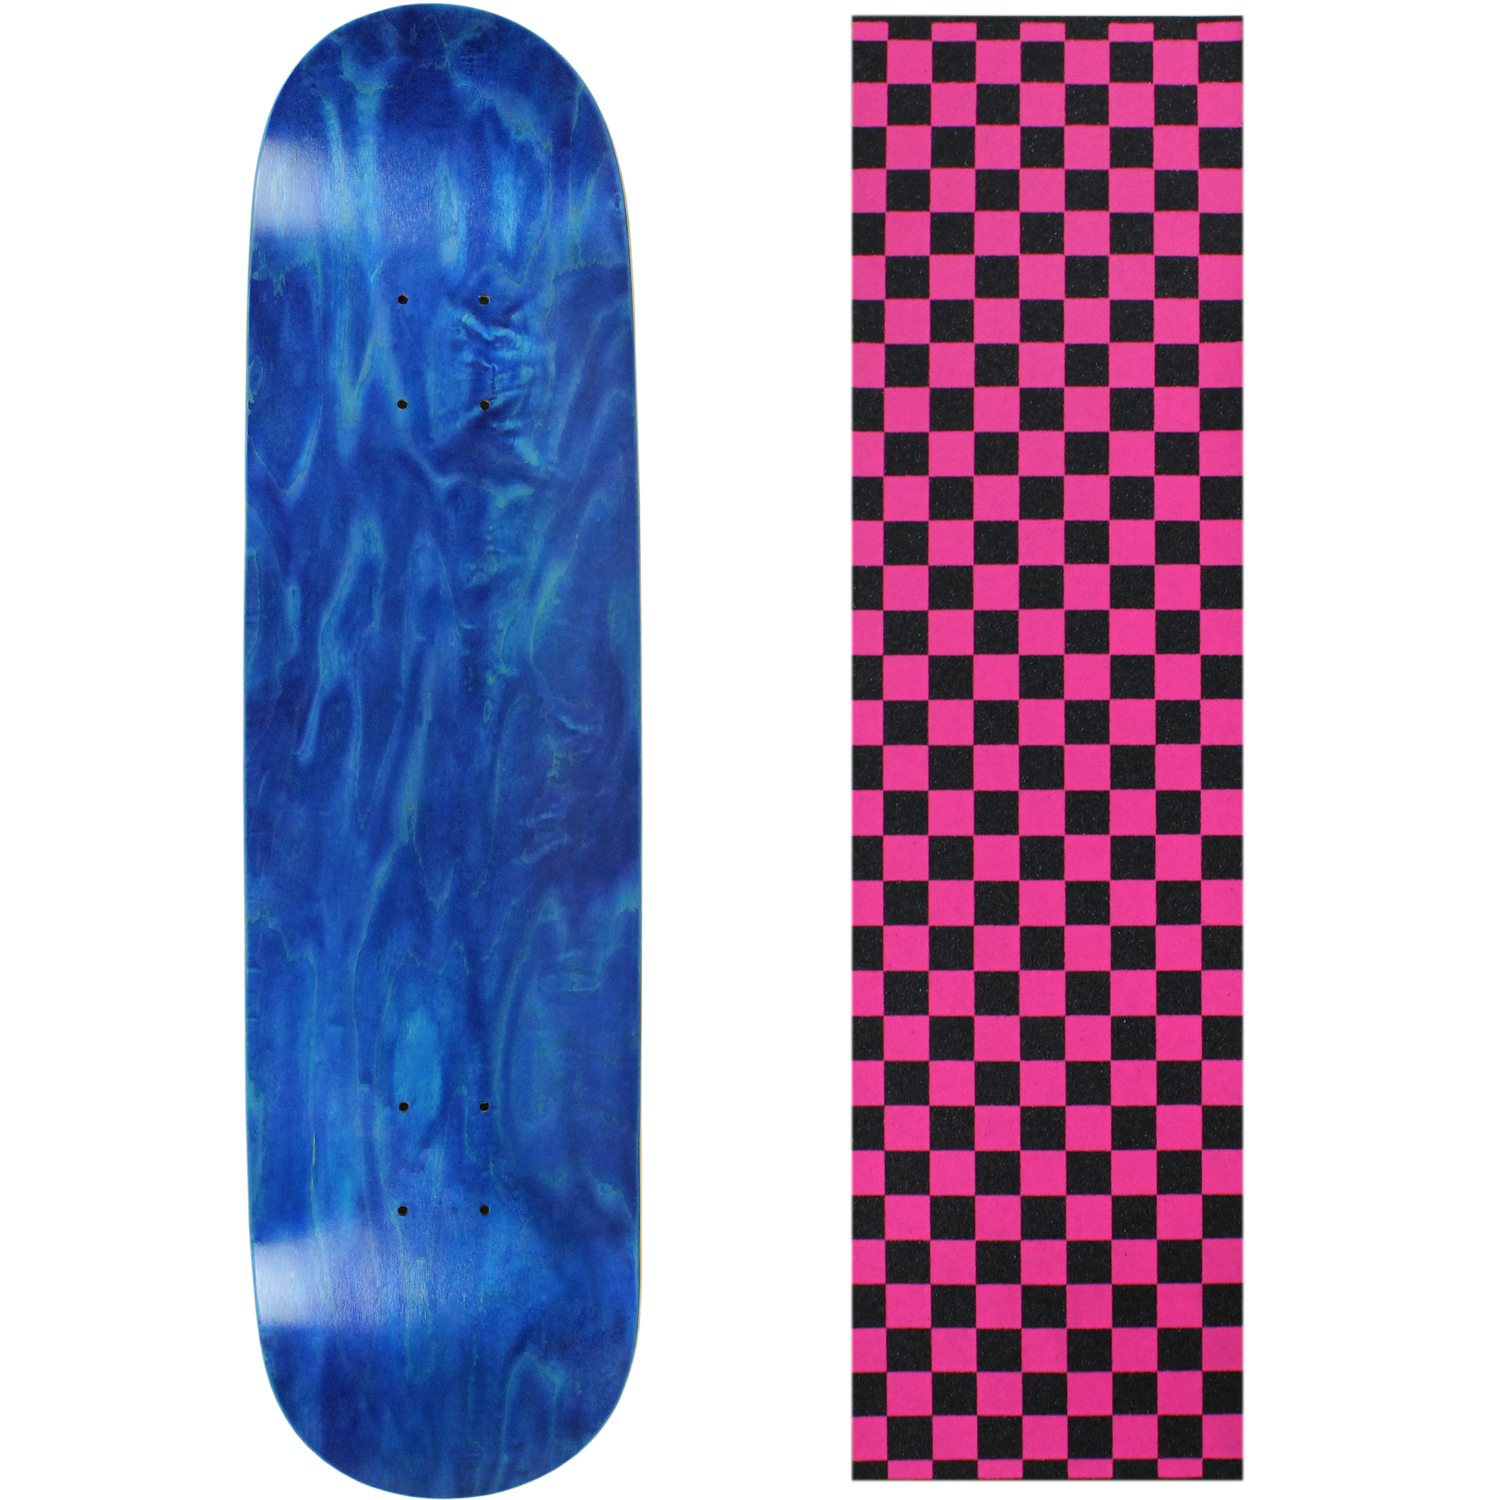 Moose Skateboard Deck Pro 7-Ply Canadian Maple STAINED BL...